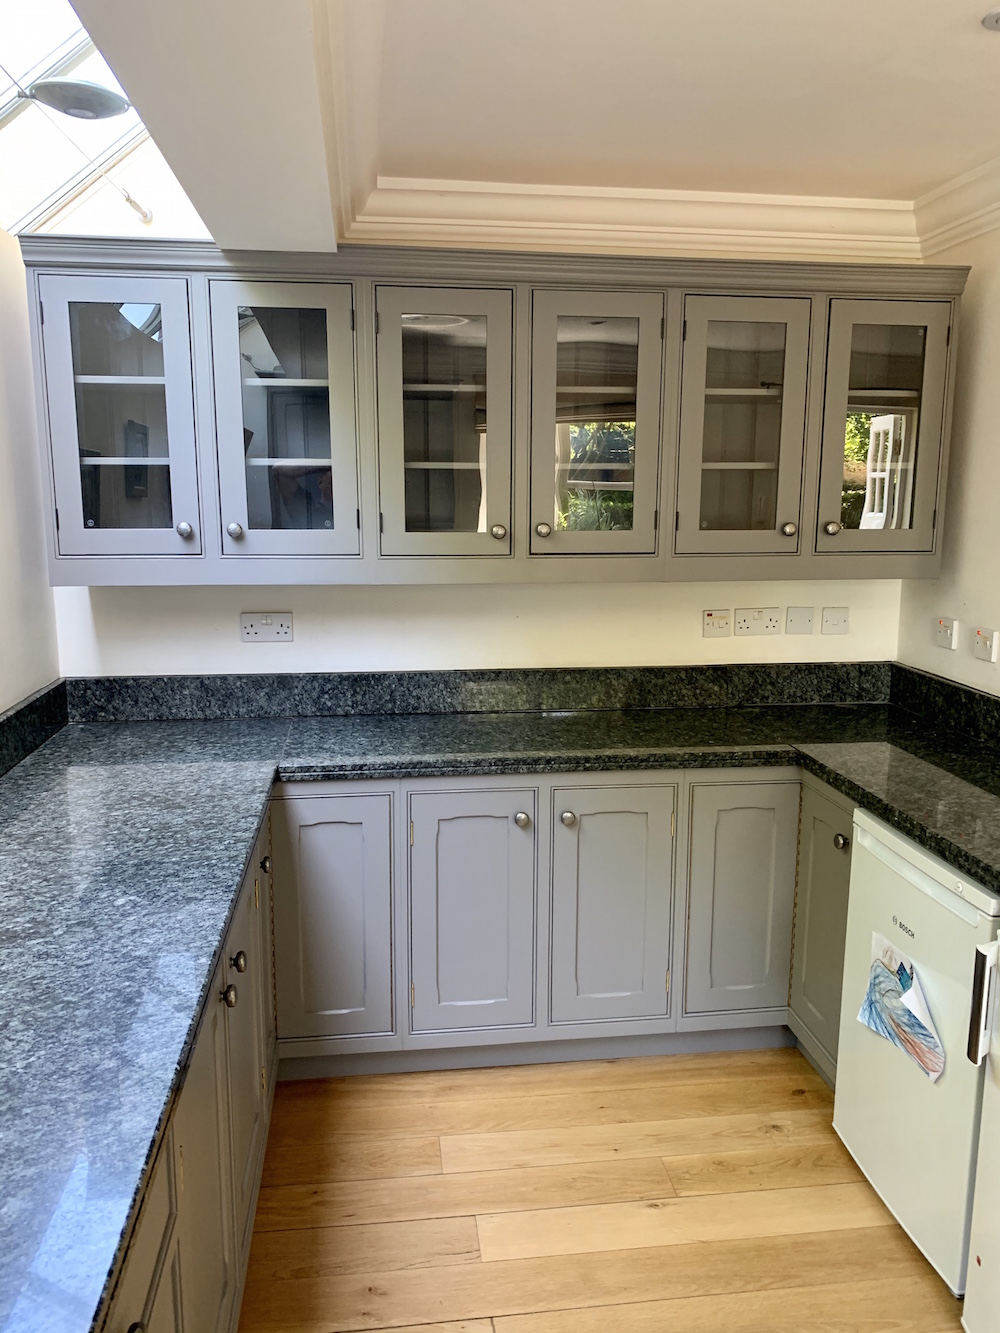 Richard Willott kitchen painter hand painted kitchen Exning